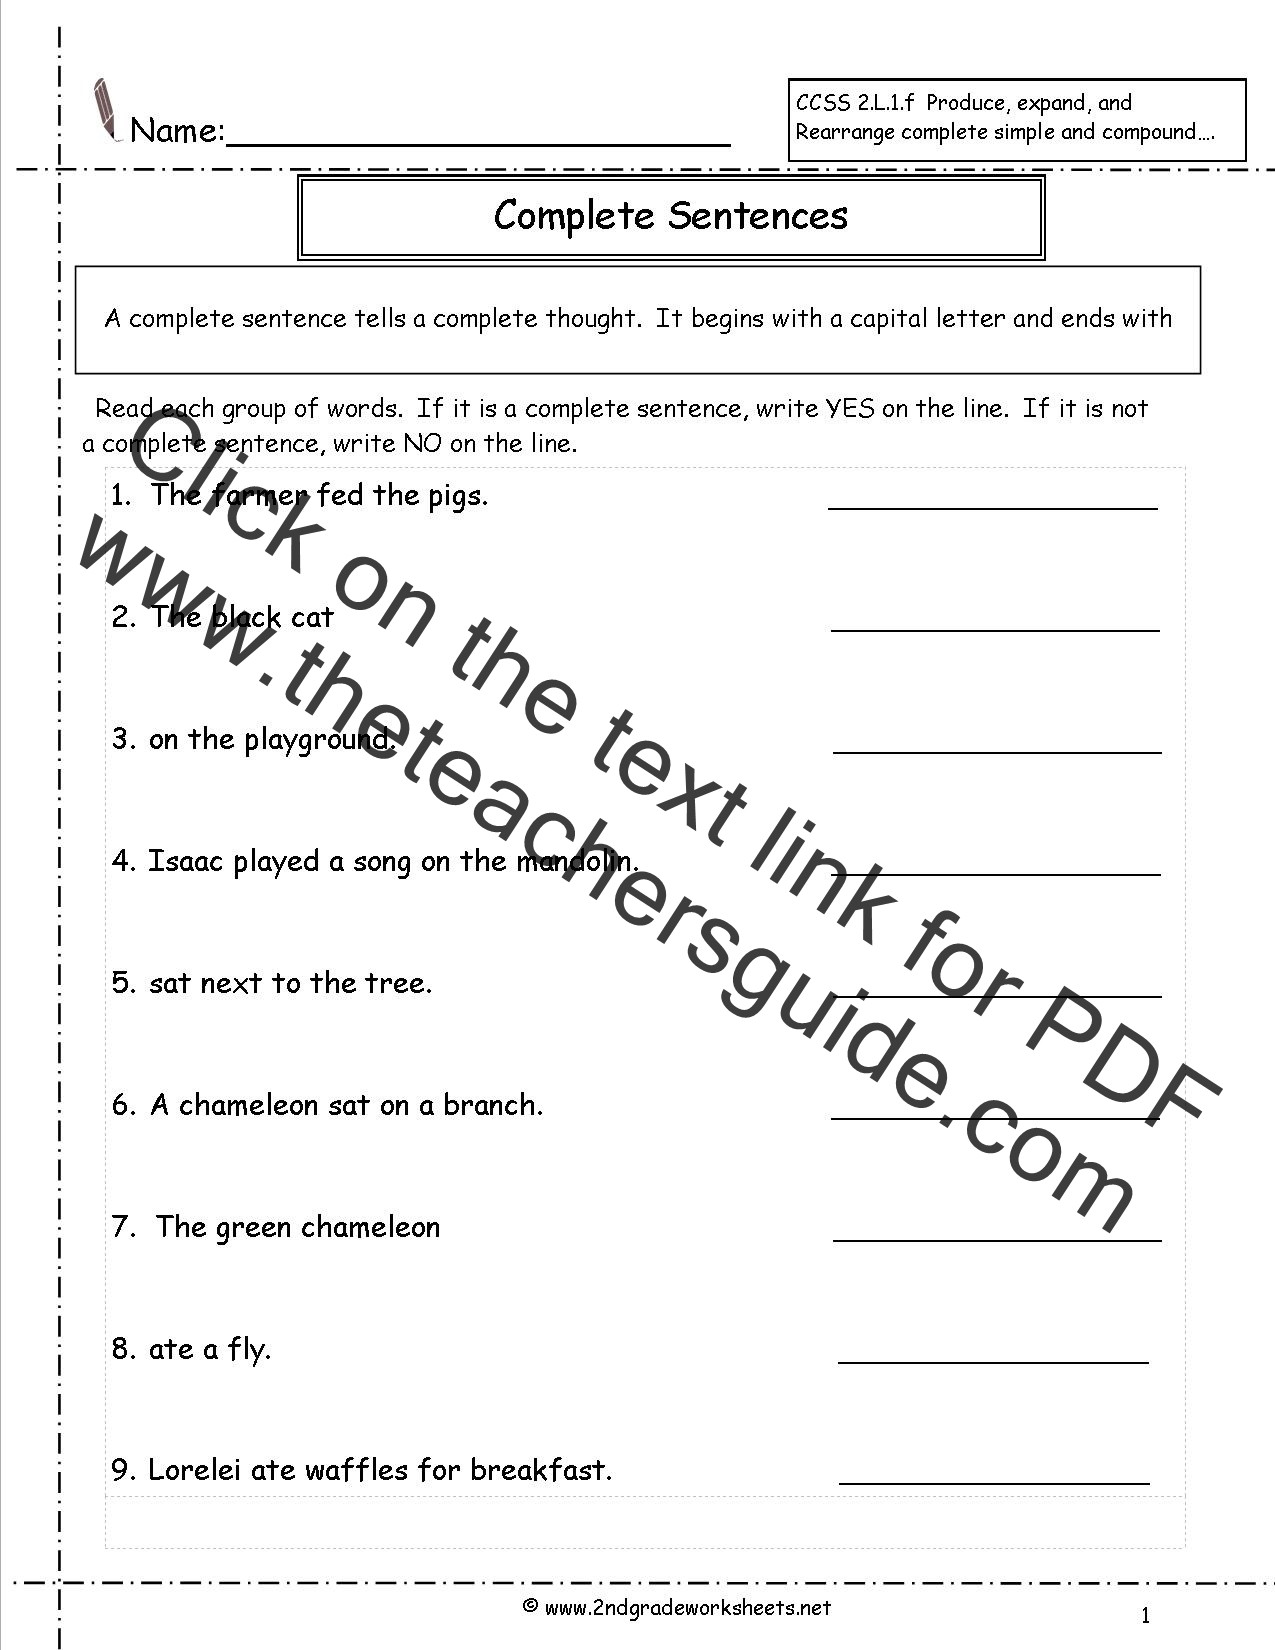 Scrambled Sentences Worksheets 3rd Grade Second Grade Sentences Worksheets Ccss 2 L 1 F Worksheets